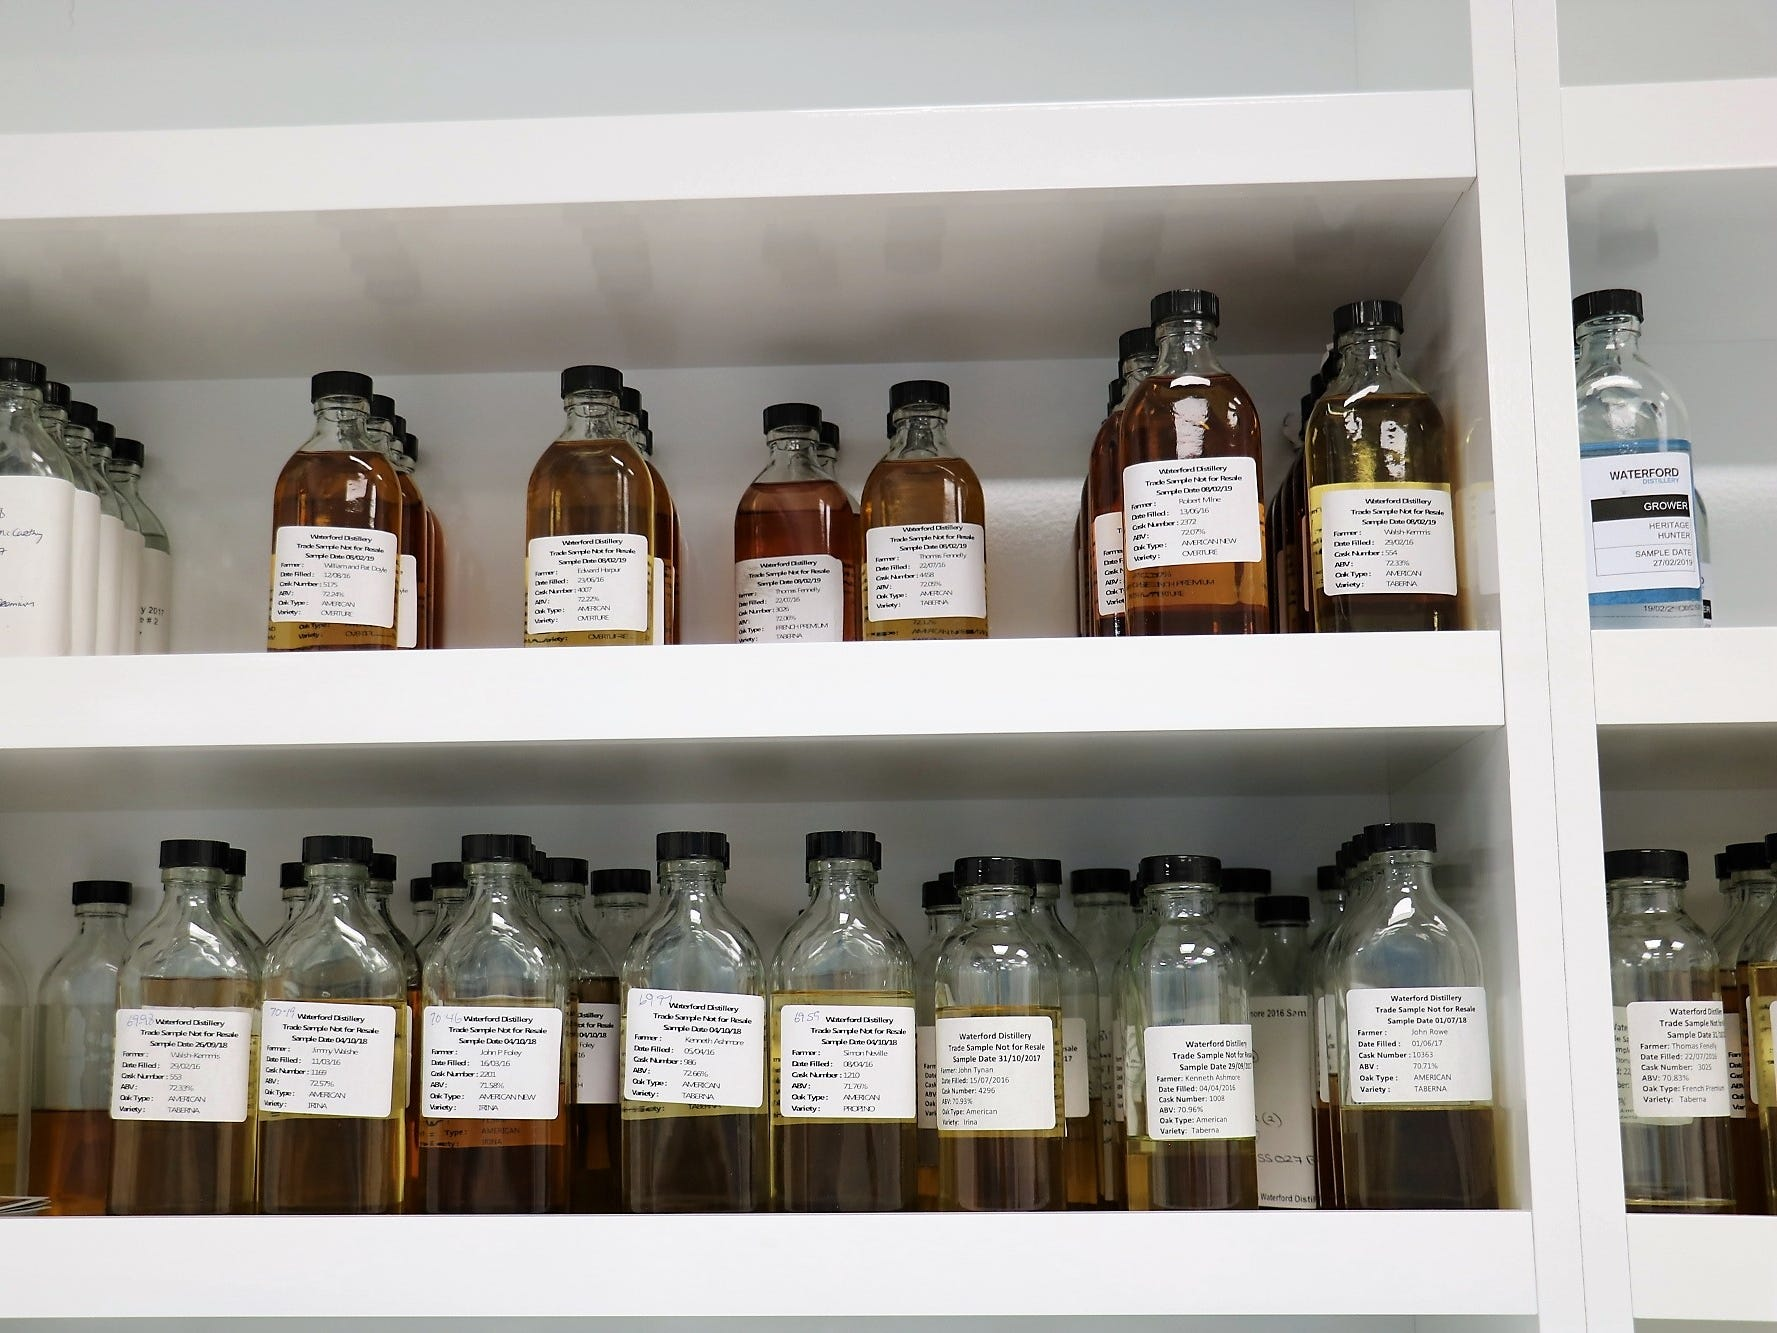 """Samples are labeled with the farmer name, date the spirit went into barrel, which cask the sample was pulled from and what type of oak it was, ABV of the spirit, and barley variety. Some may be destined for single-farm releases, while all will eventually become part of the distillery's core """"cuvée,"""" blending together its many flavors."""